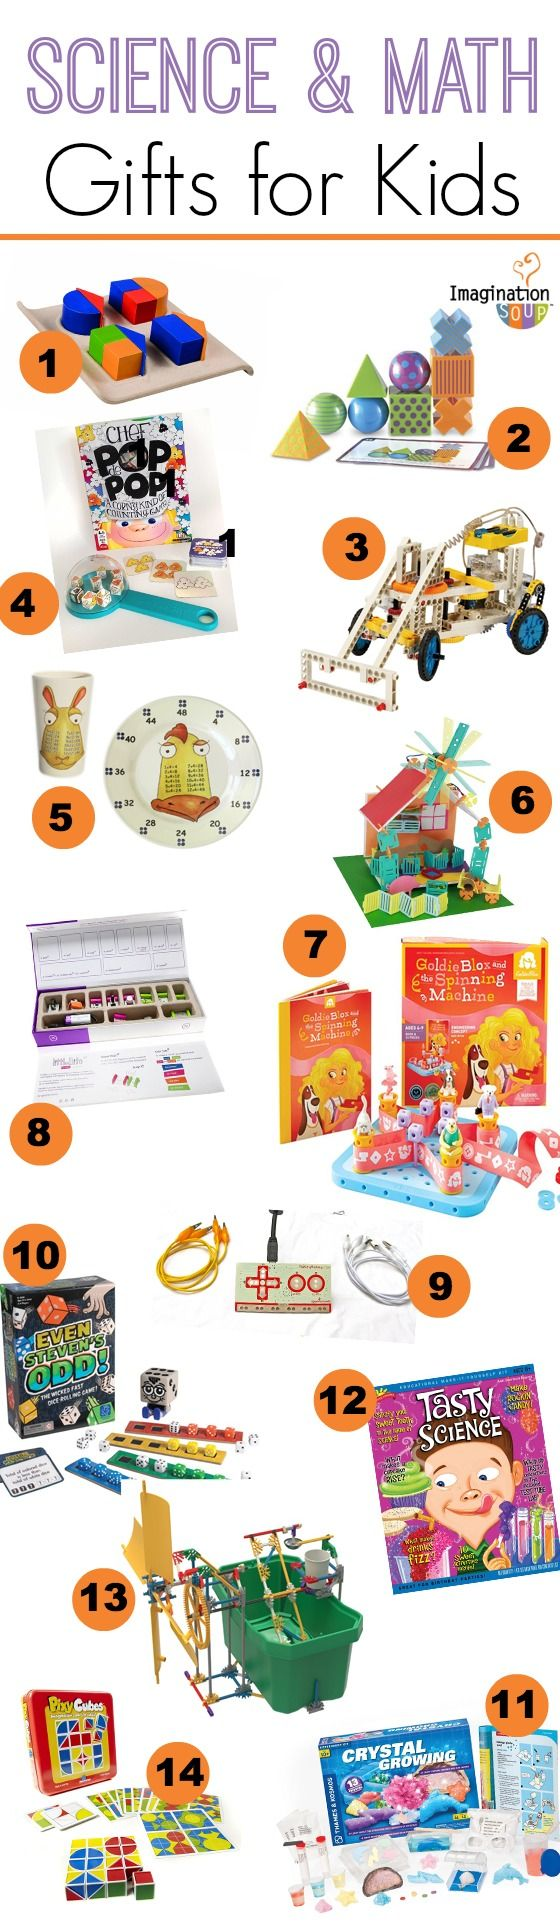 Gift Guide for Kids: Math and Science Learning Toys - Imagination Soup Imagination Soup Fun Learning and Play Activities for Kids